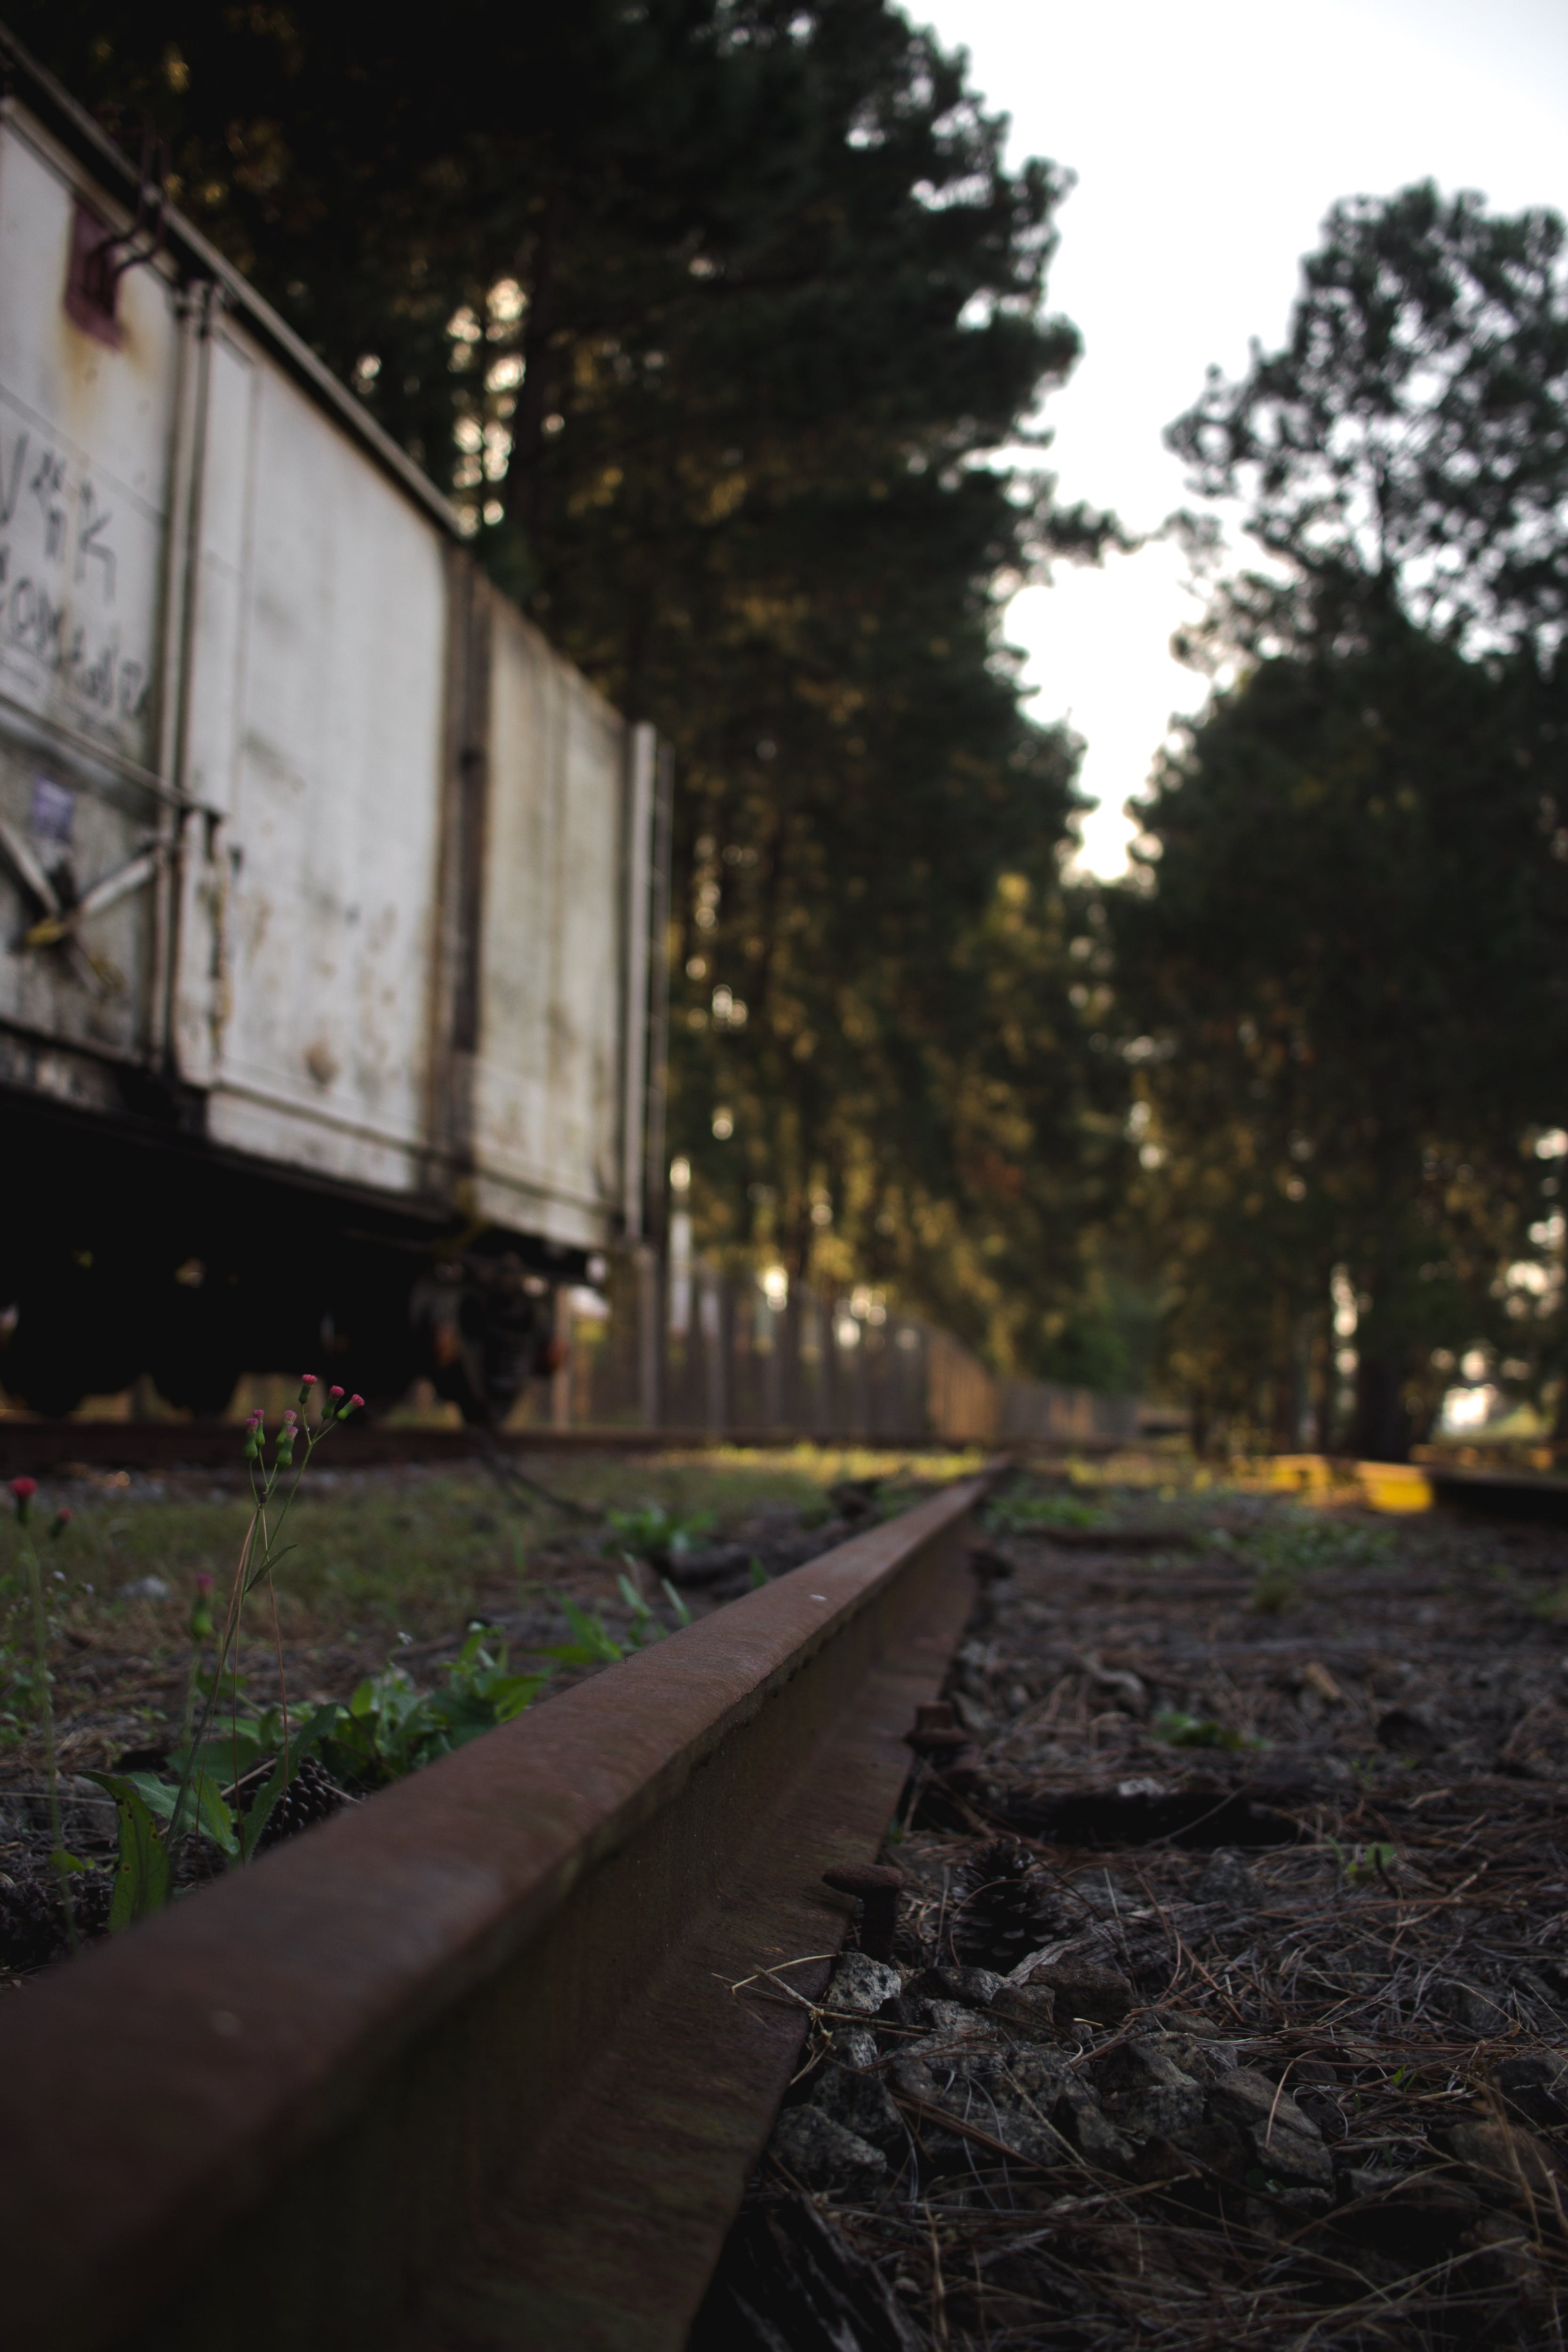 Free stock photo of beauty in nature, environment, nature photography, rail